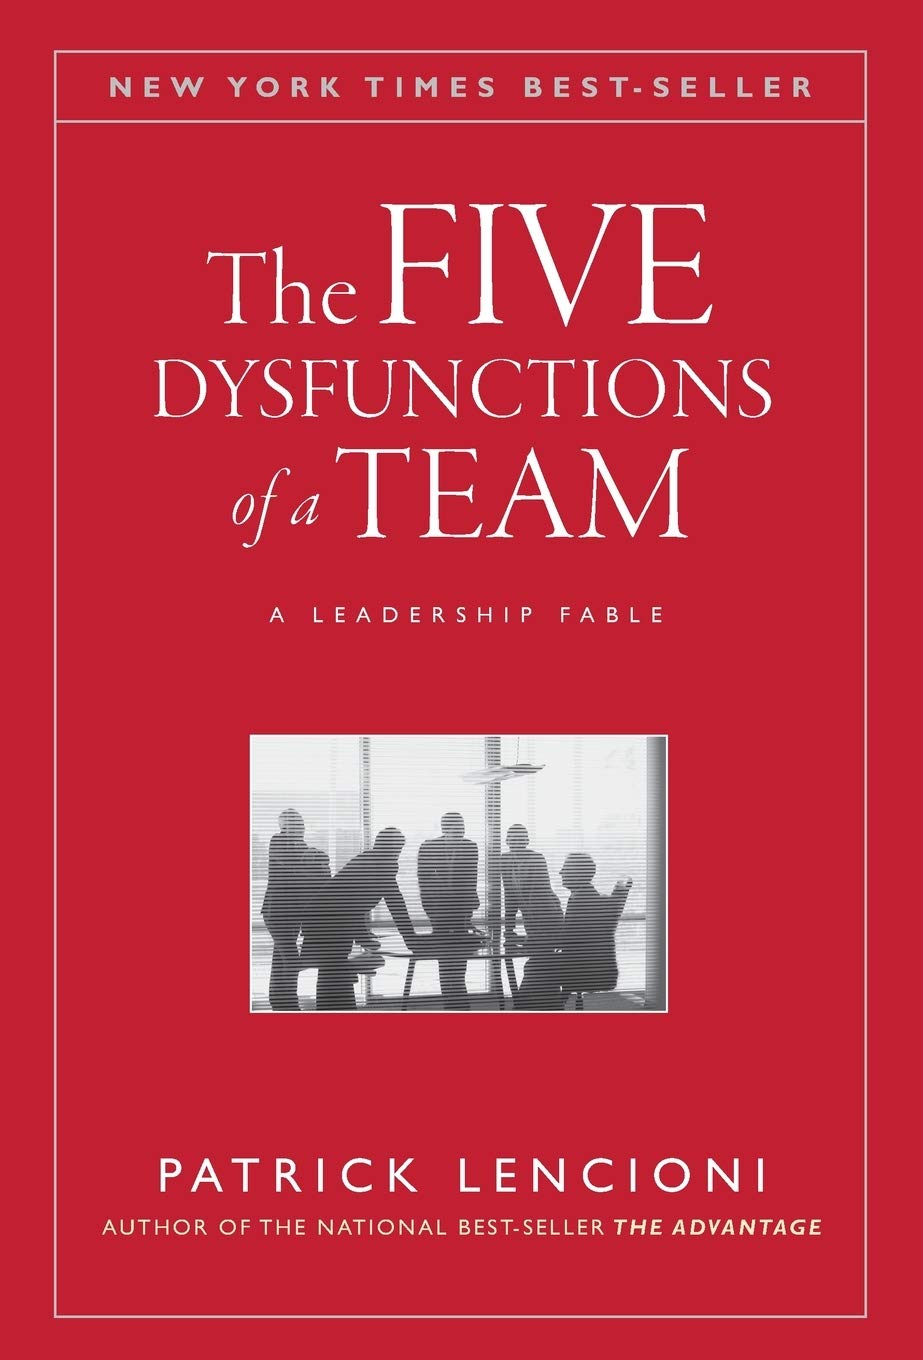 The Five Dysfunctions of a Team - Book Notes